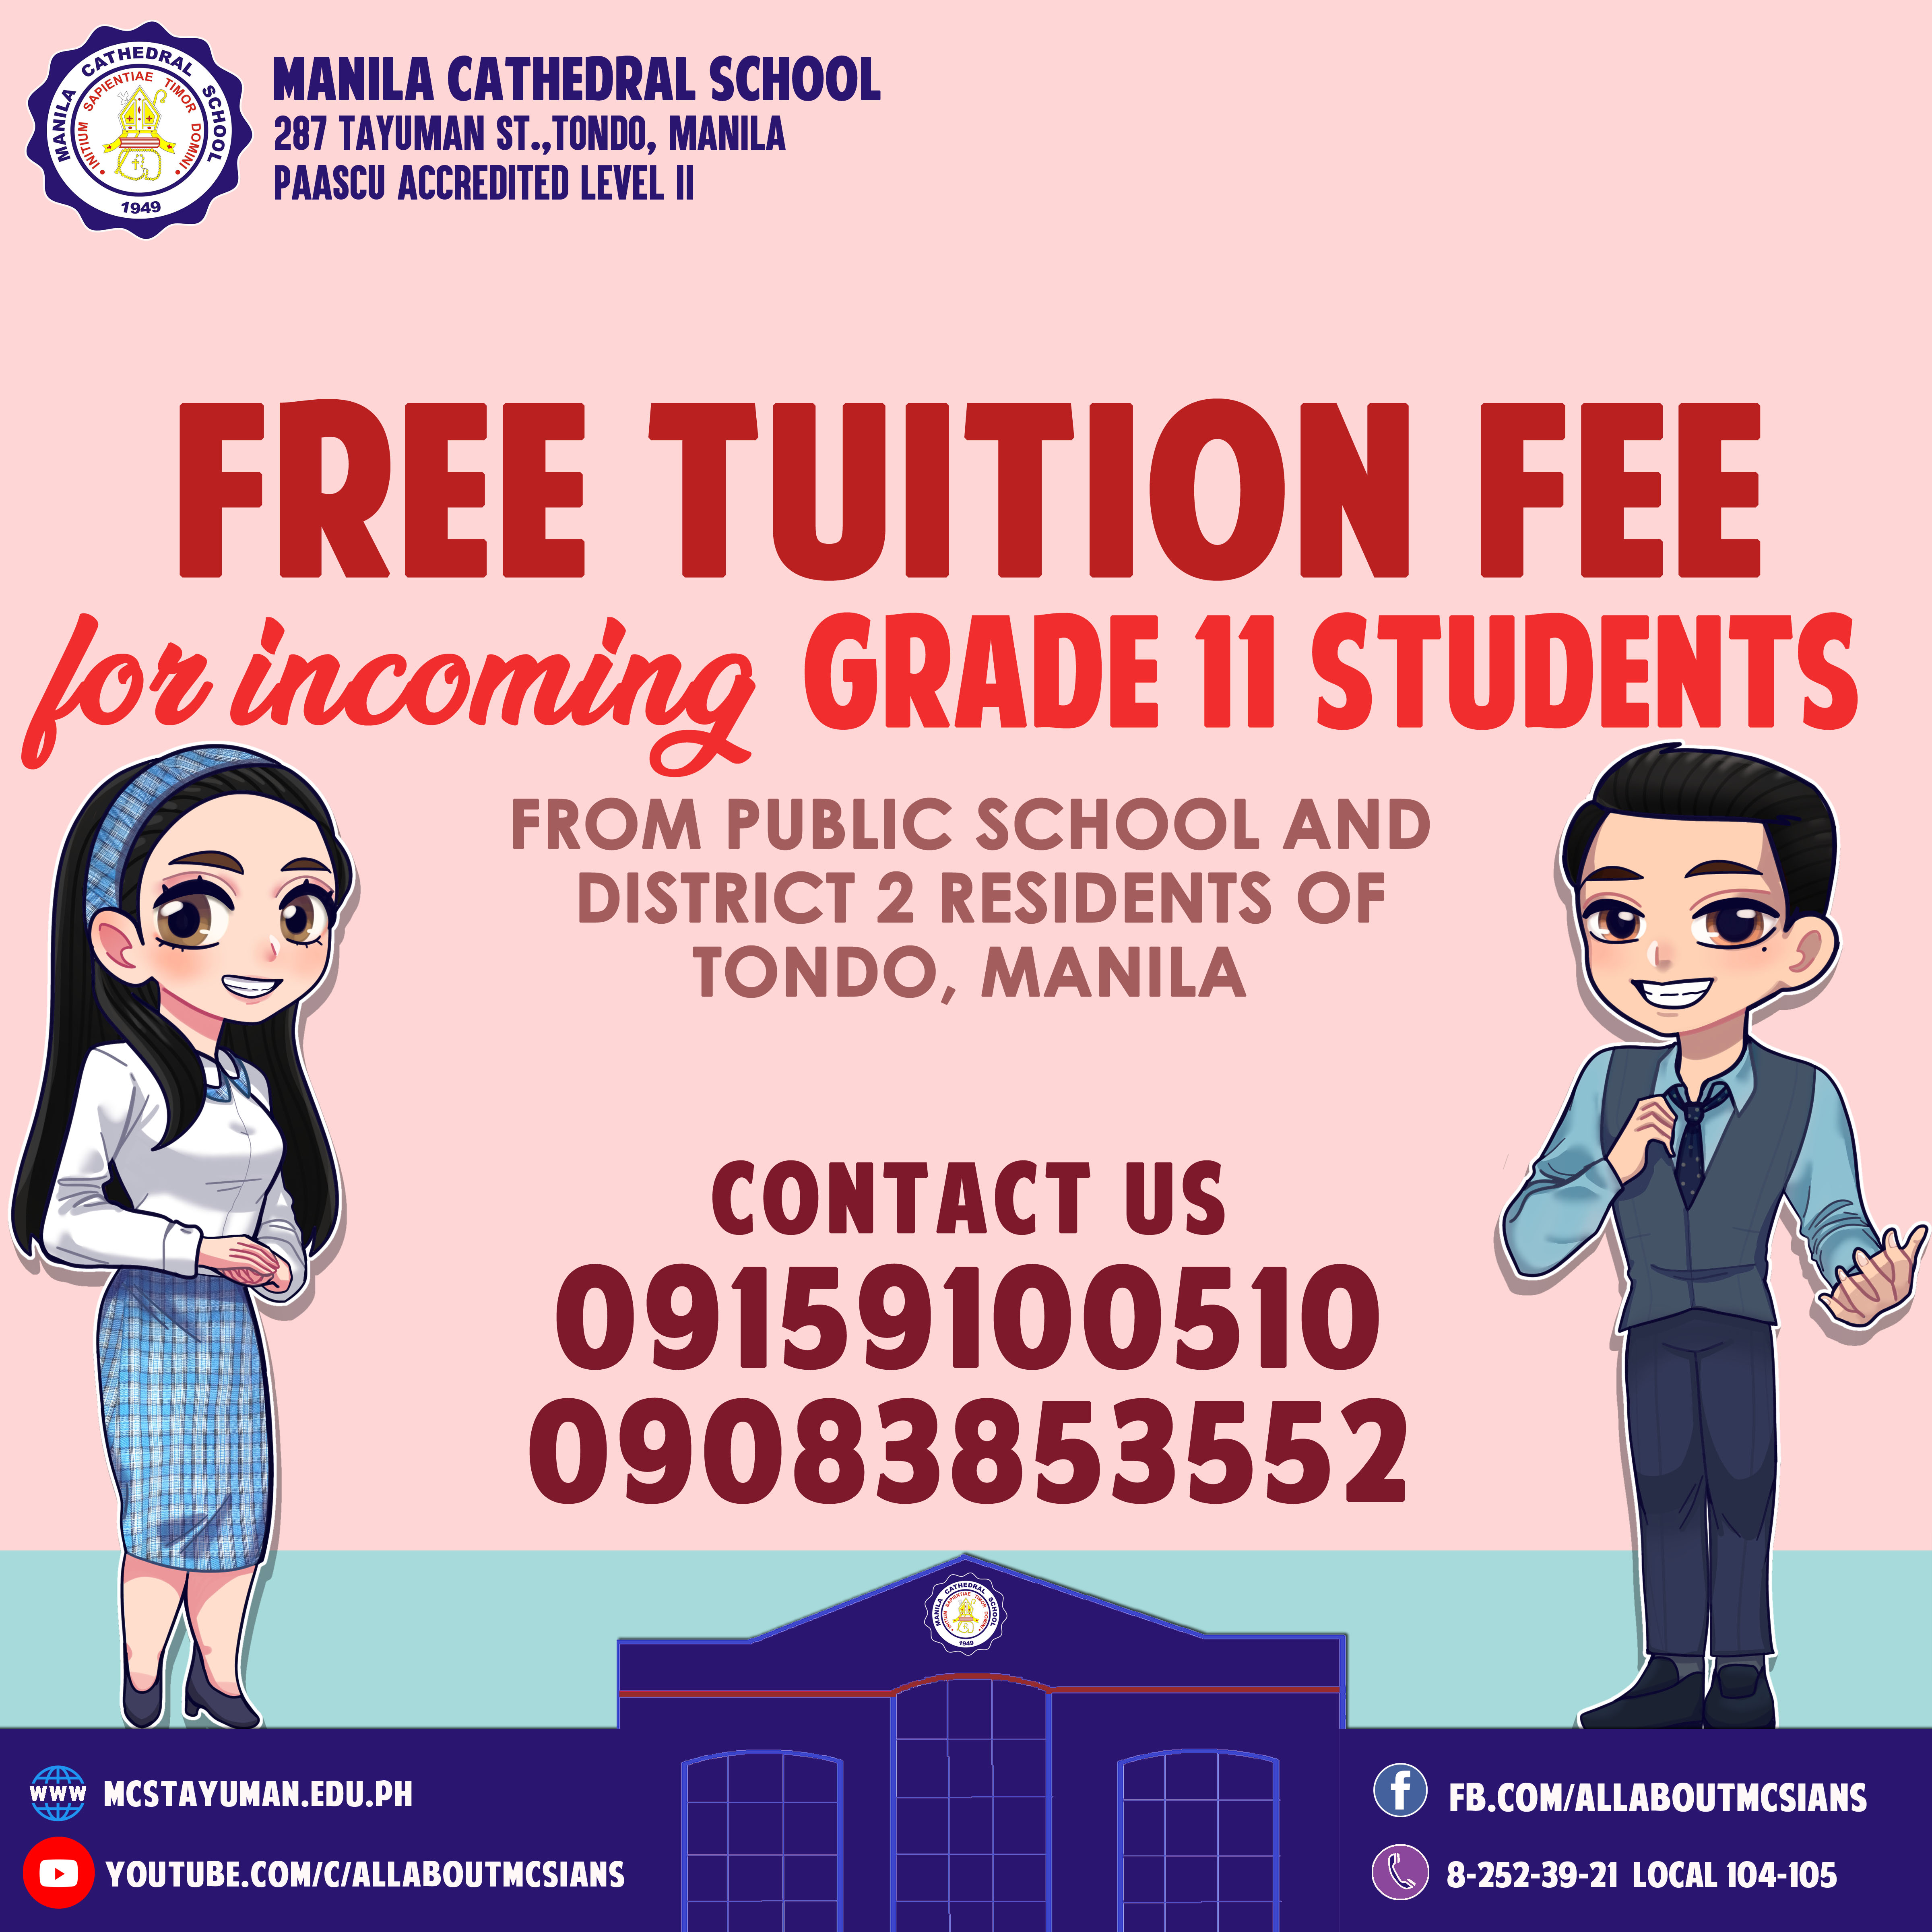 Manila Cathedral School is committed to serve the least, the lost, and the last. MCS' Senior High School offers FREE TUITION FEE for the incoming grade 11 students of Tondo District 2.